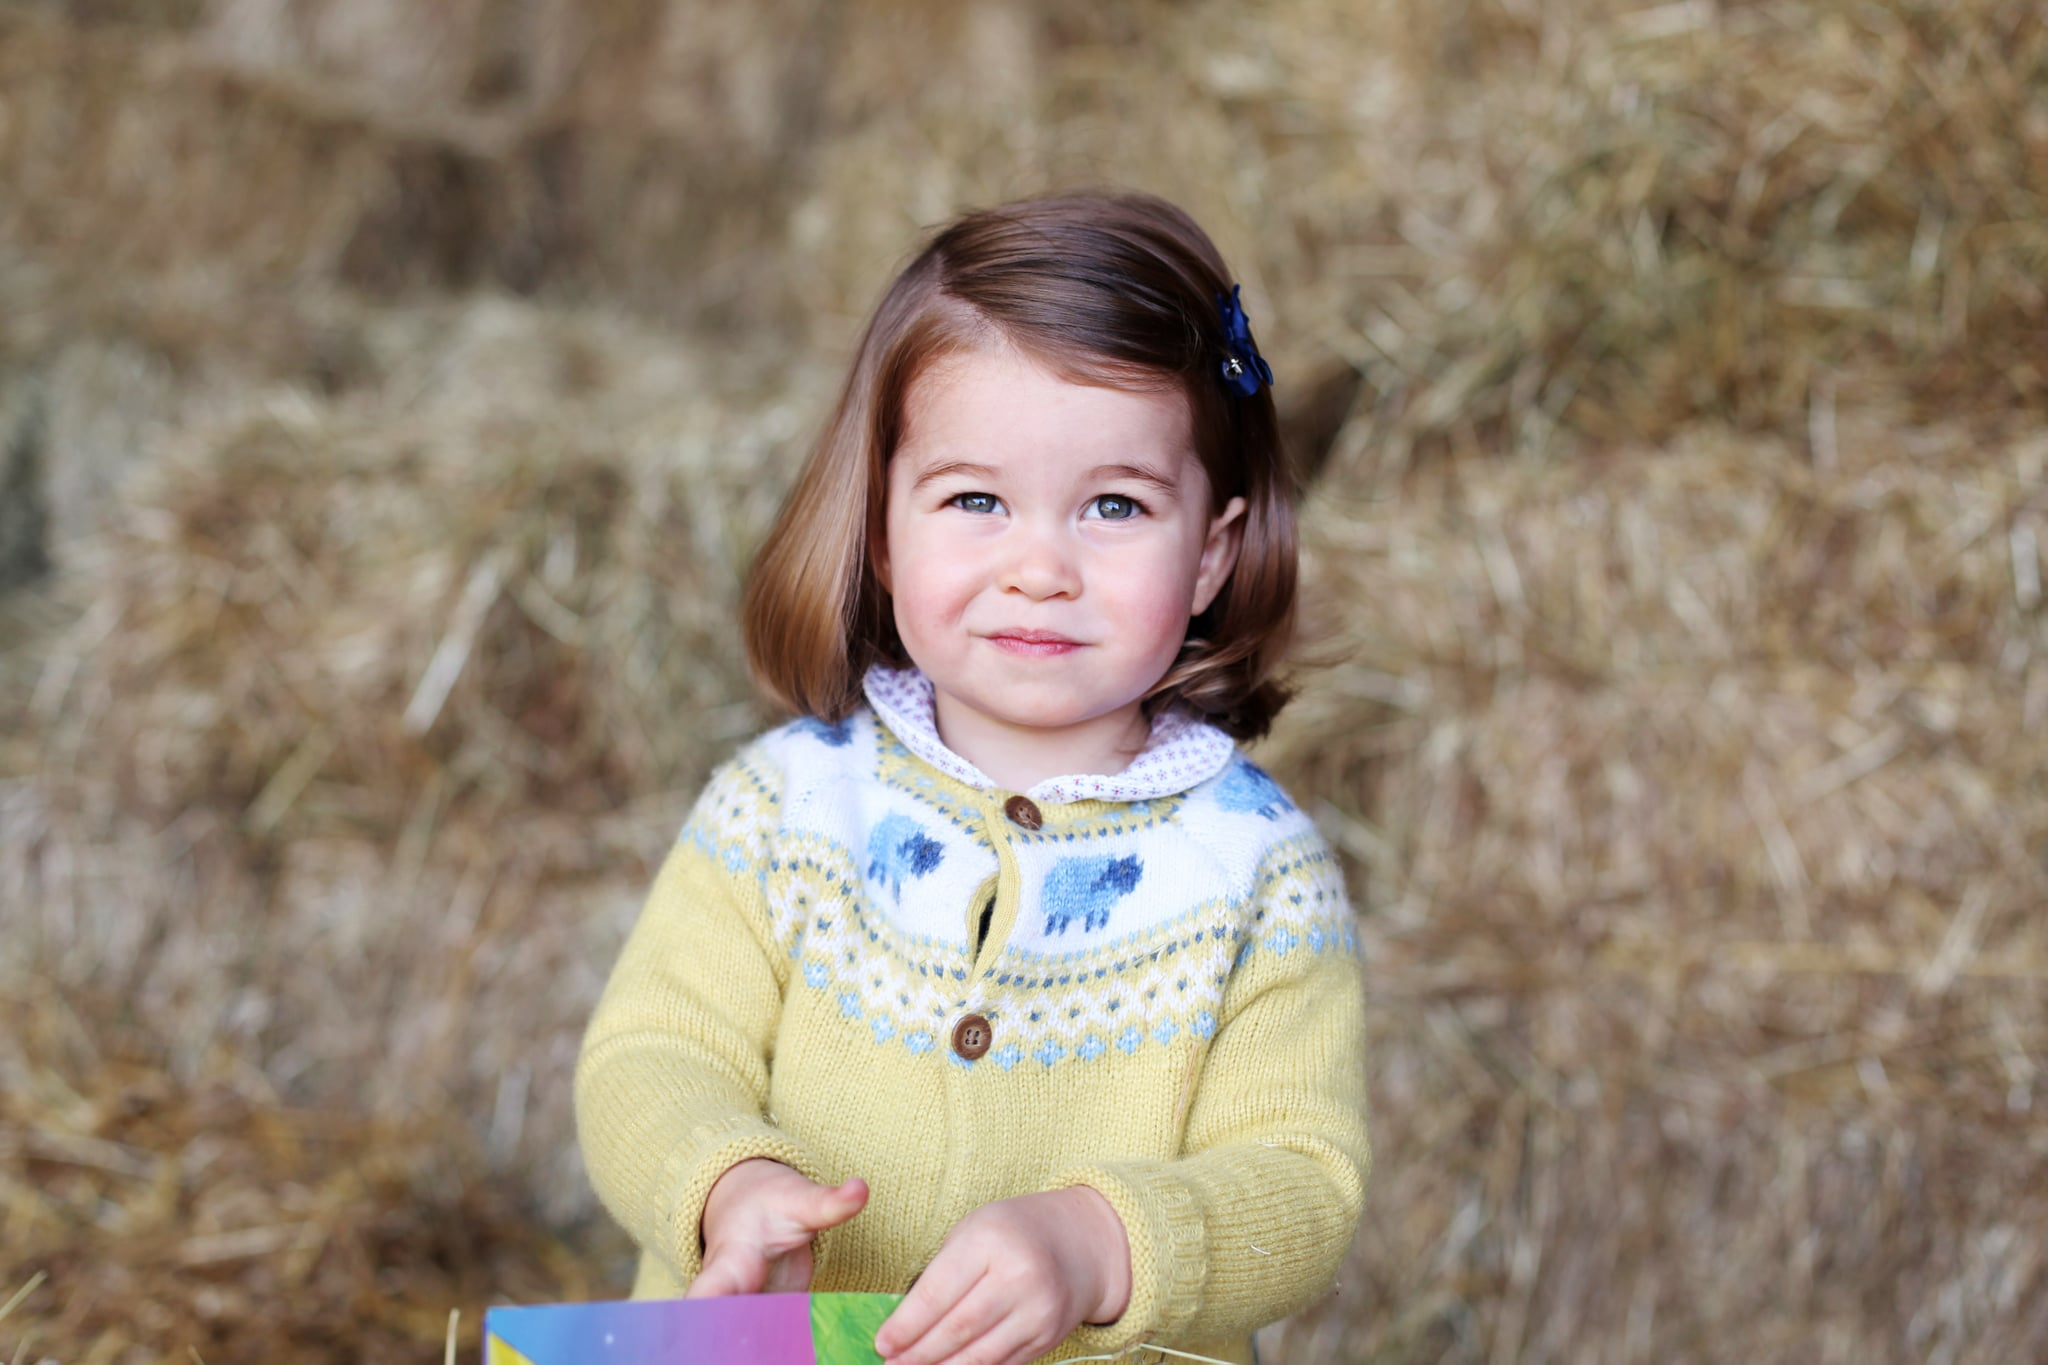 NORFOLK, ENGLAND - APRIL 2017: In this undated handout image released by the Duke and Duchess of Cambridge, Princess Charlotte is pictured at home in April in Norfolk, England. The photograph was taken in April by The Duchess at their home in Norfolk to mark Princess' second birthday. (Photo by HRH The Duchess of Cambridge via Getty Images)NEWS EDITORIAL USE ONLY. NO COMMERCIAL USE (including any use in merchandising, advertising or any other non-editorial use including, for example, calendars, books and supplements). This photograph is provided to you strictly on condition that you will make no charge for the supply, release or publication of it and that these conditions and restrictions will apply (and that you will pass these on) to any organisation to whom you supply it. All other requests for use should be directed to the Press Office at Kensington Palace in writing.NOTE TO EDITORS: This handout photo may only be used in for editorial reporting purposes for the contemporaneous illustration of events, things or the people in the image or facts mentioned in the caption. Reuse of the picture may require further permission from the copyright holder.